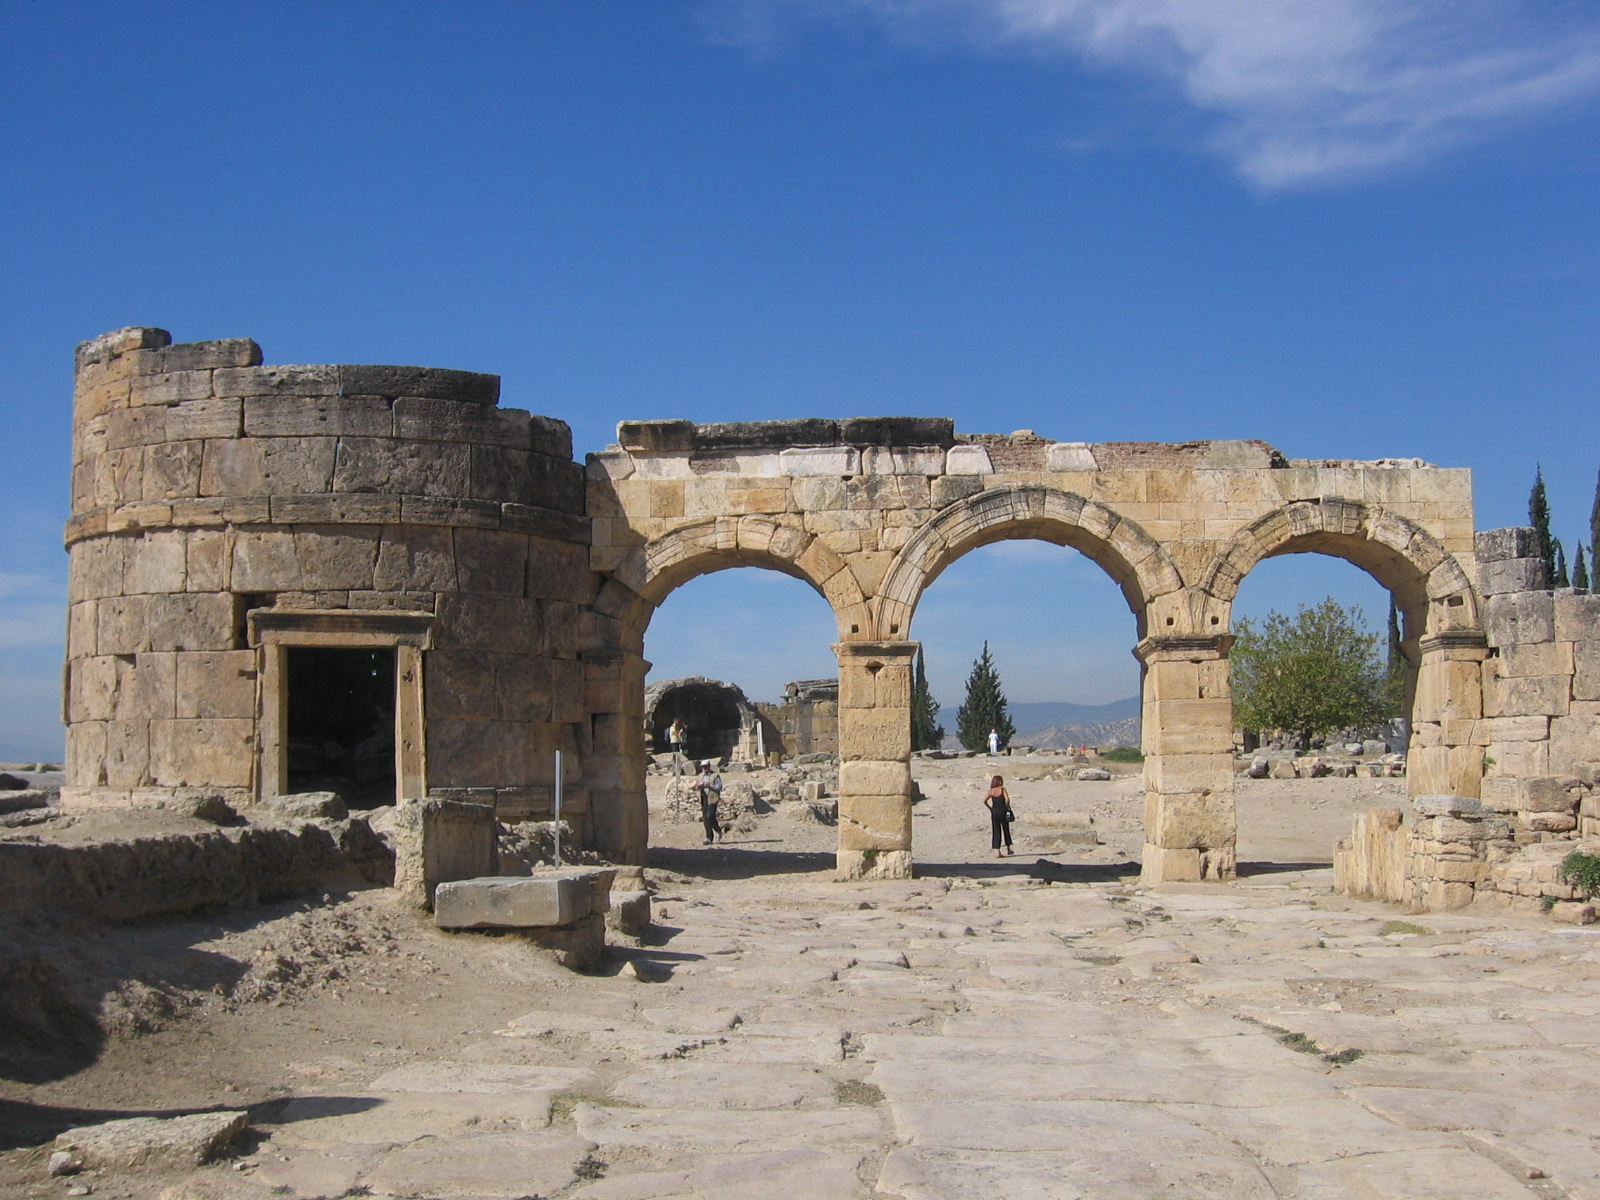 Roman Arches & Structure at Hierapolis